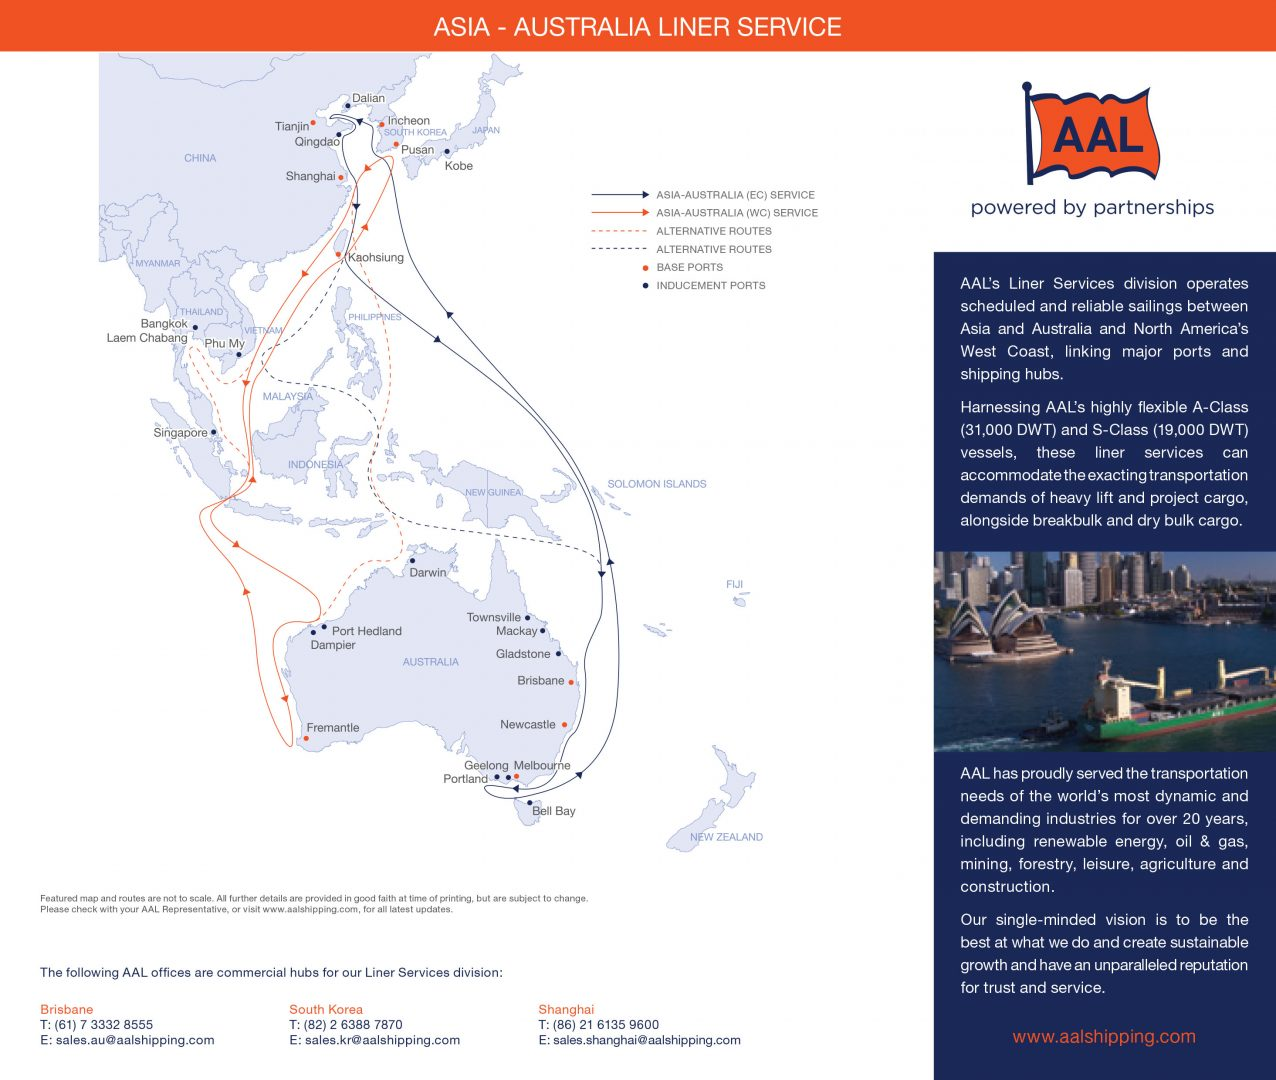 Asia - Australia Liner Service Route Map